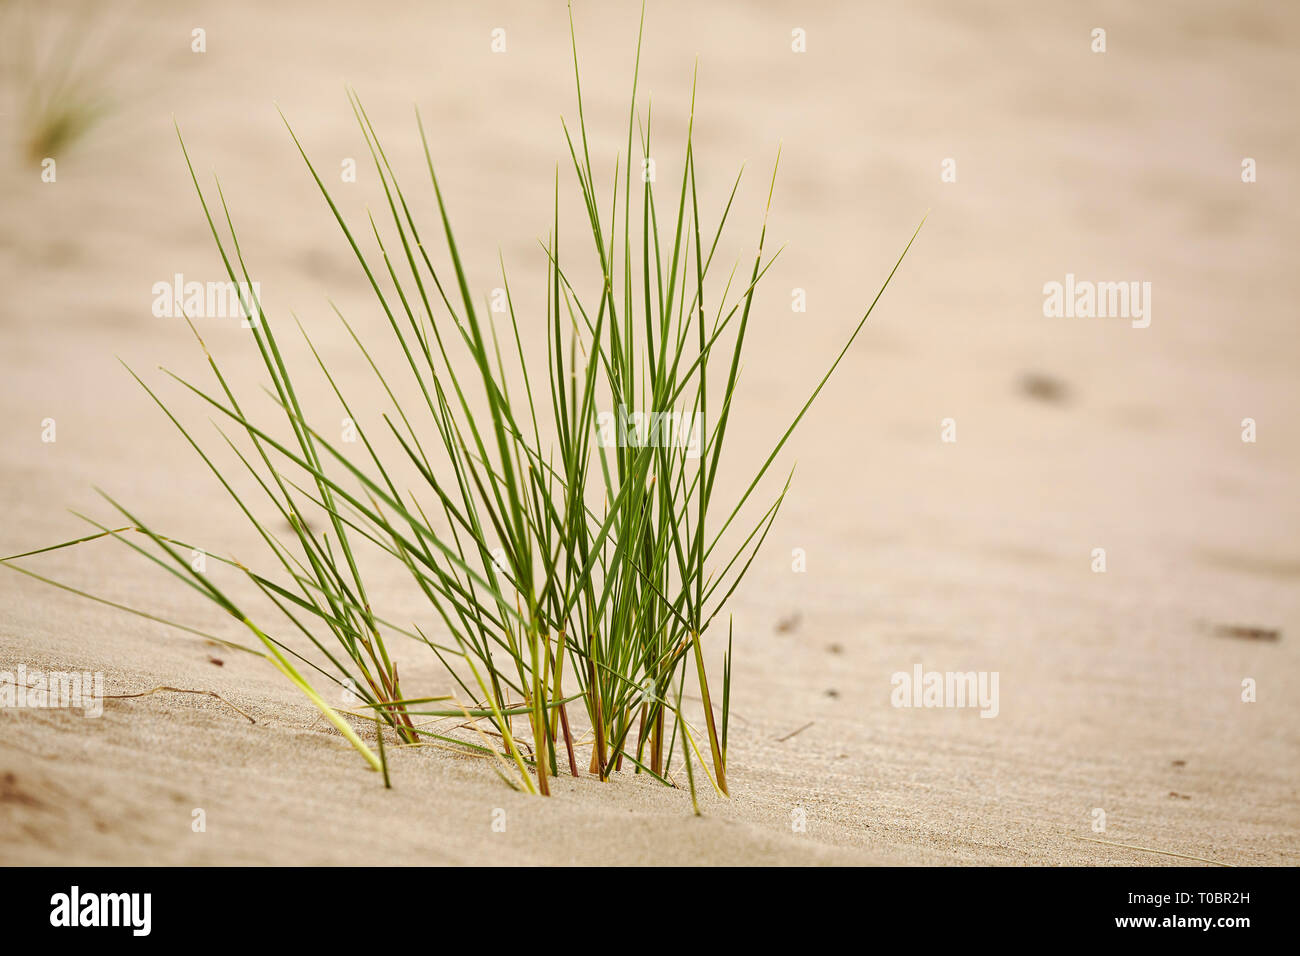 Marram grass growing in dunes at Crow Point in the Taw and Torridge estuary, near Braunton, north Devon, Great Britain. - Stock Image